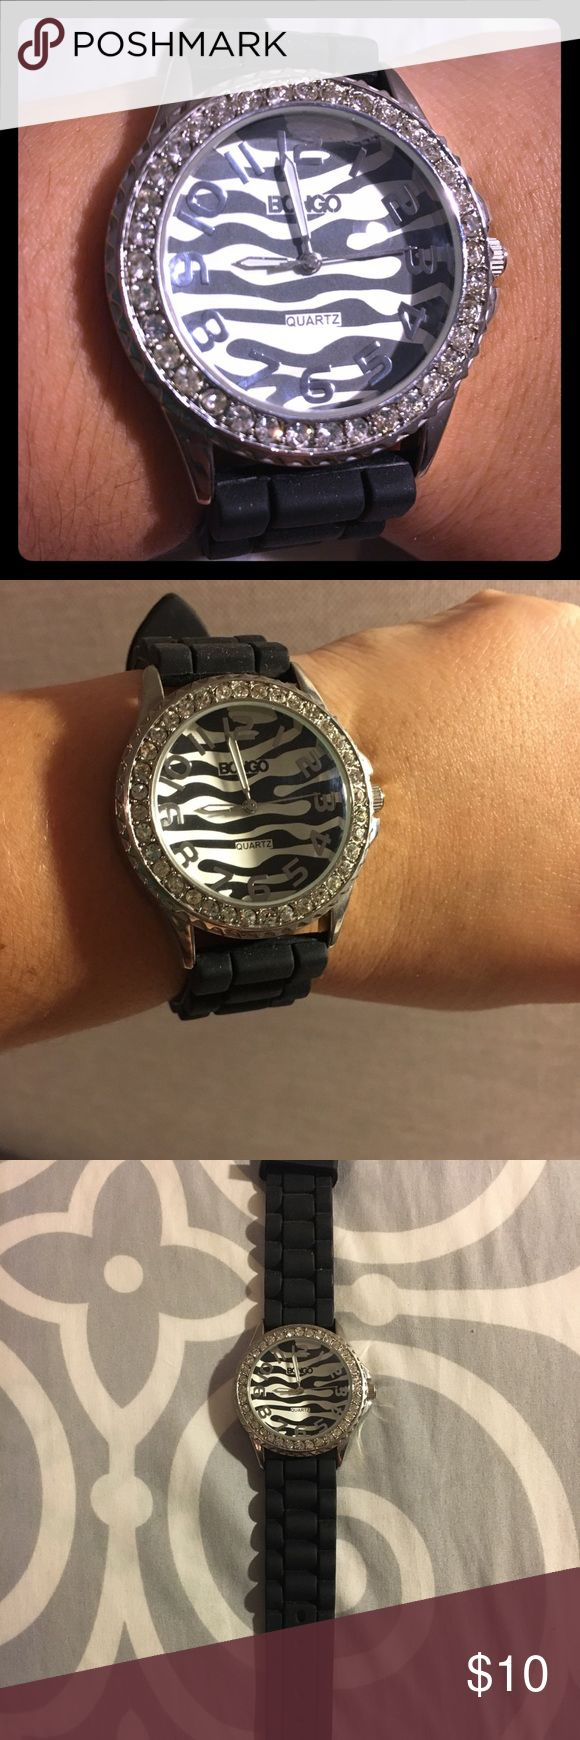 Bongo watch Bongo watch. Black rubber band that's super comfortable. Multiple adjustment settings, fits just about any size women's wrist. May need a new battery, but is otherwise in perfect condition. Only worn a handful of times, no scratches. BONGO Accessories Watches